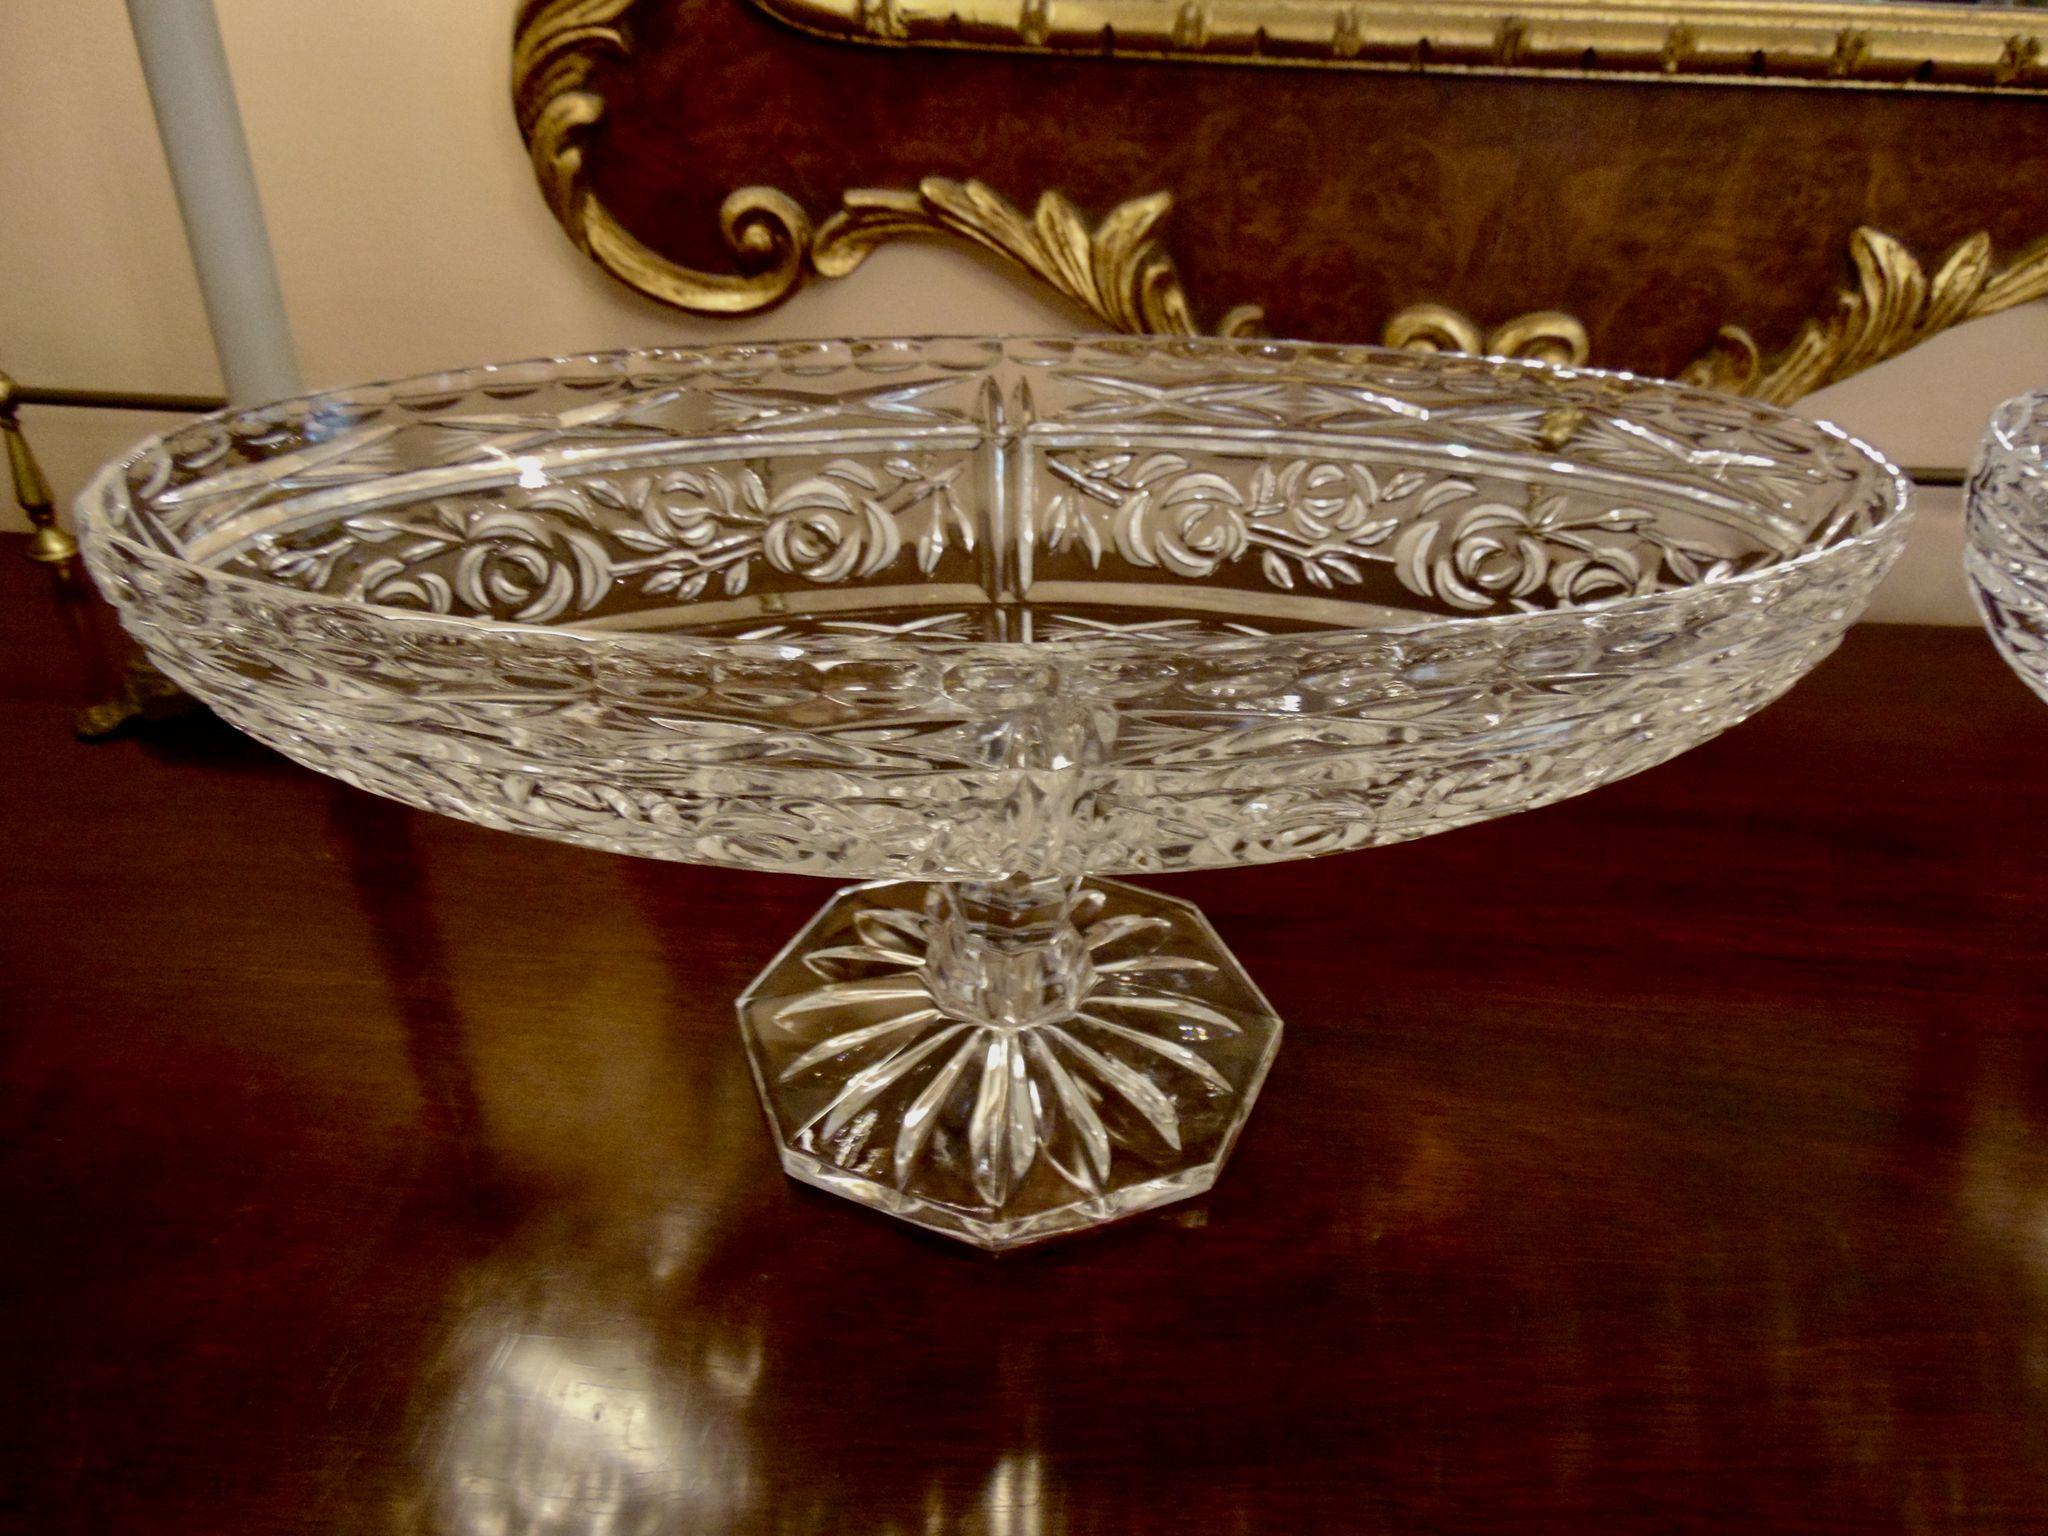 Hawkes gravic glass oval centerpiece bowl on pedestal from